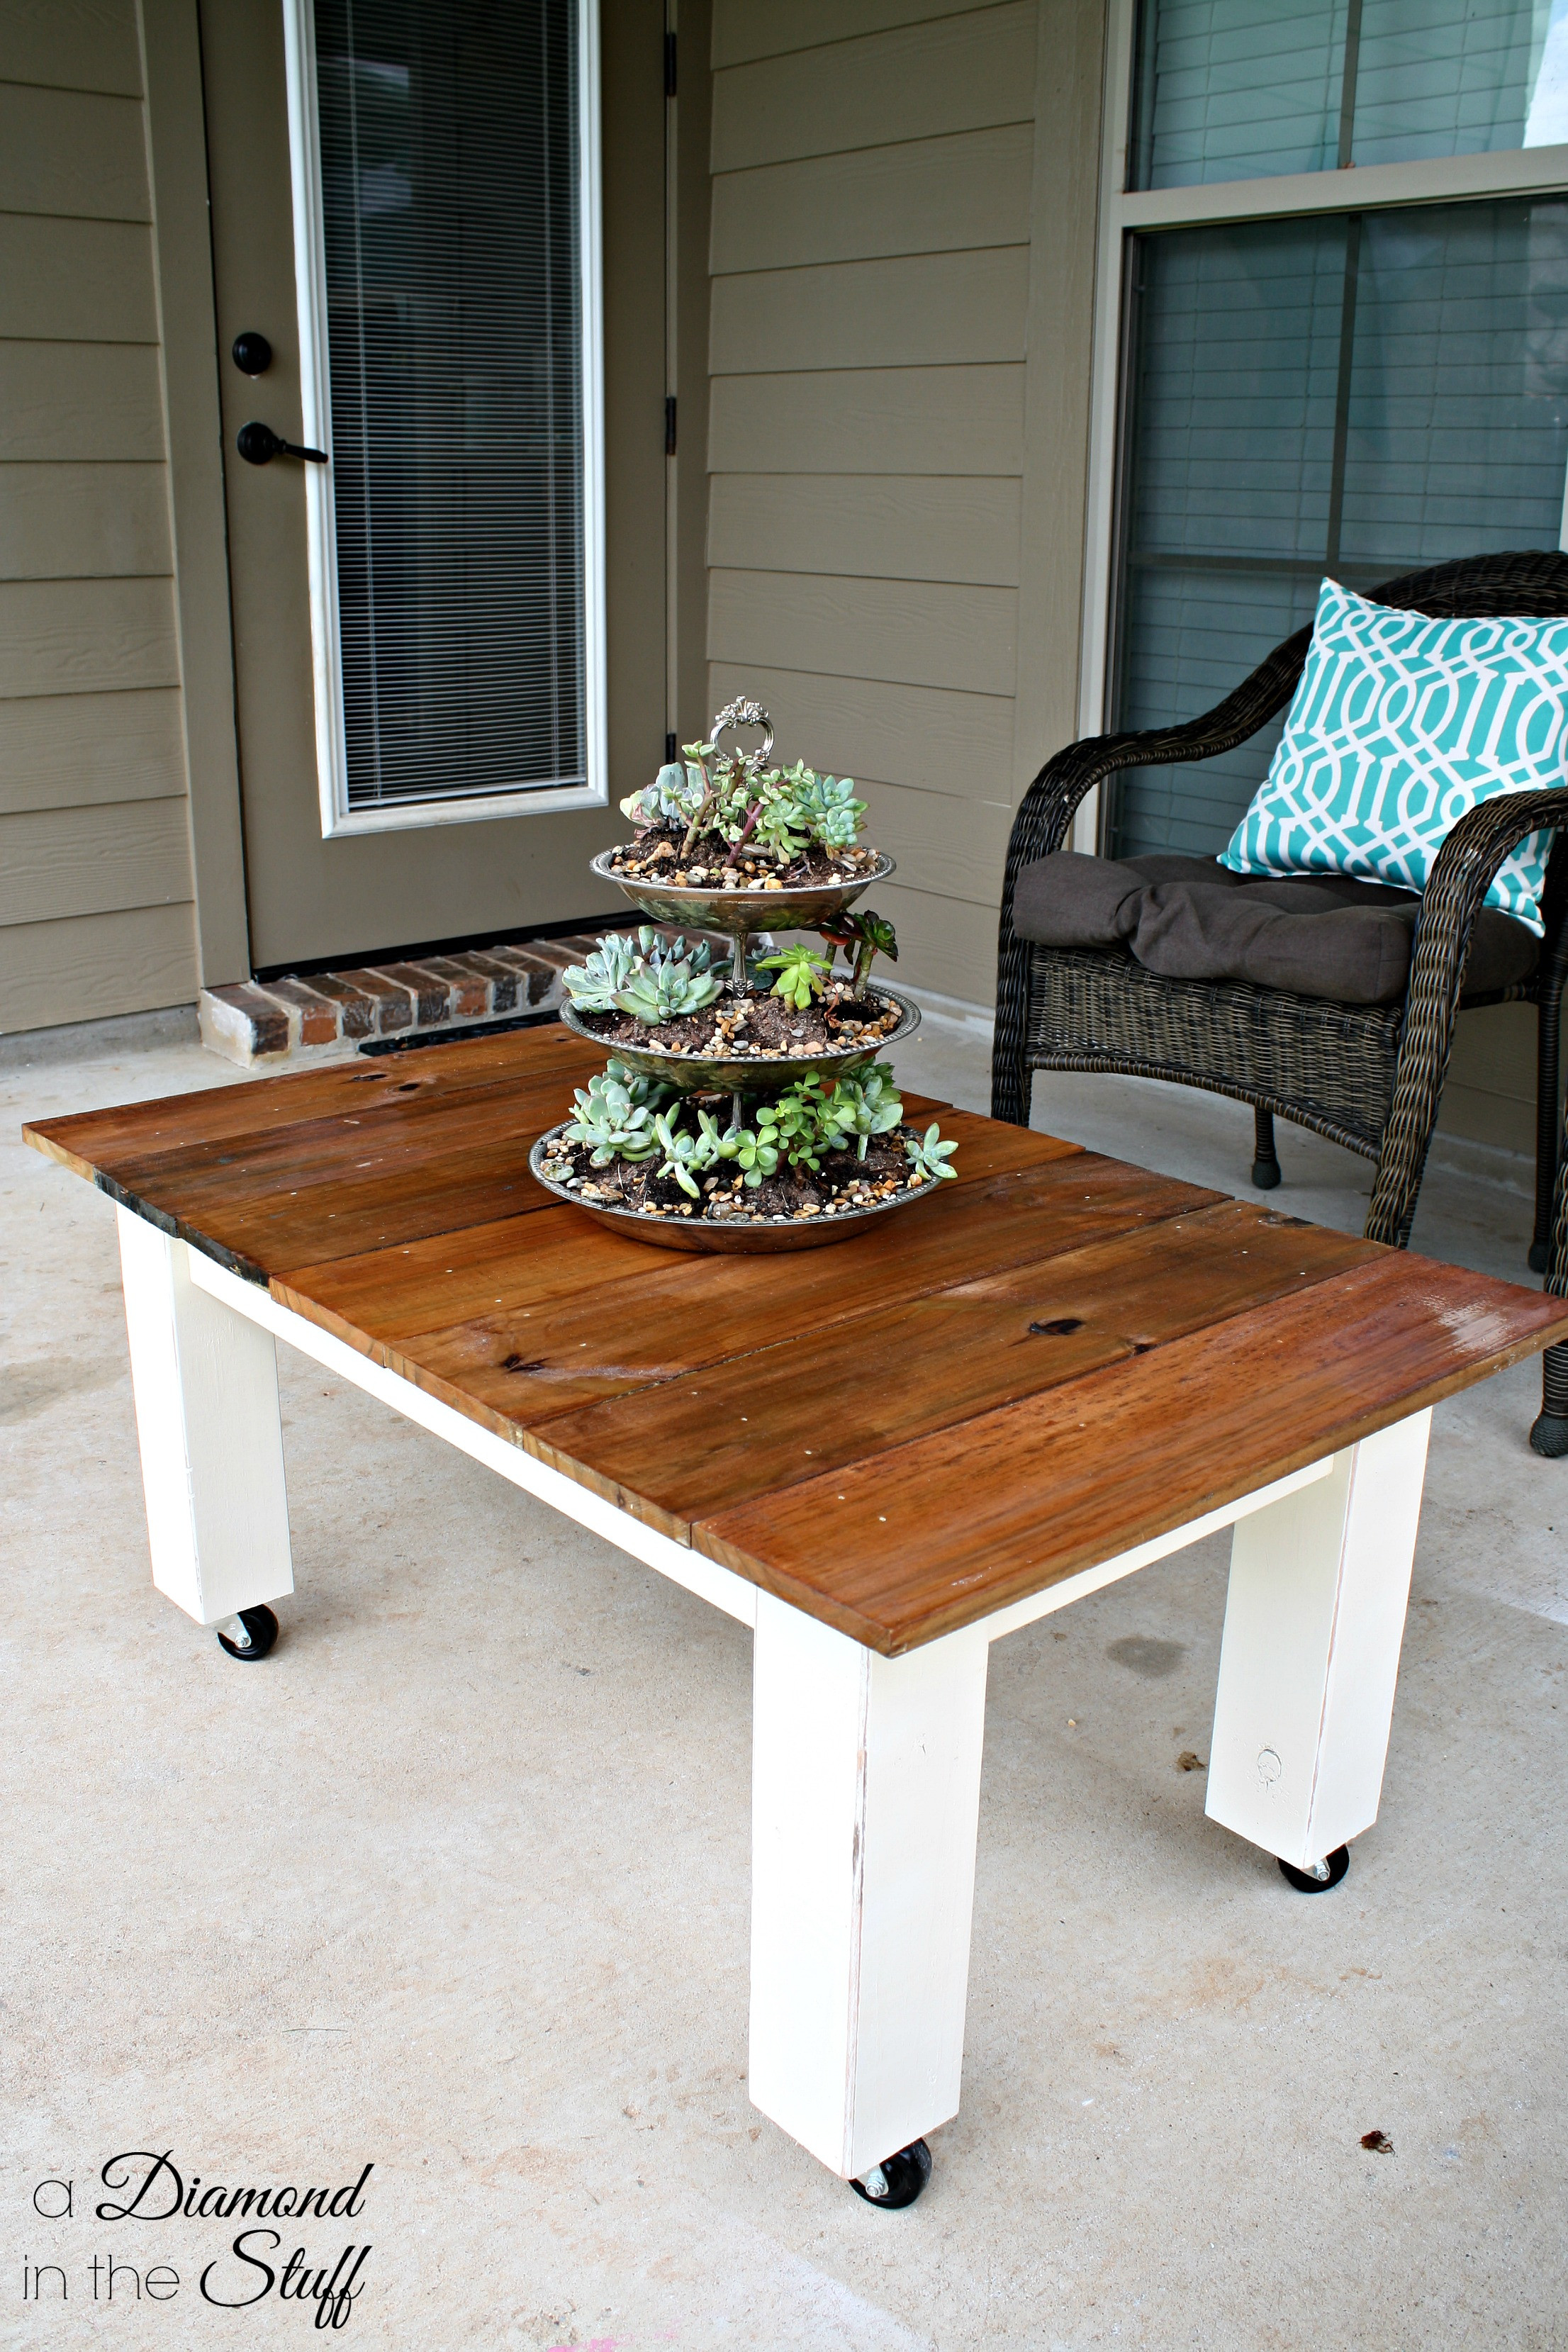 Best ideas about Outdoor Coffee Table . Save or Pin DIY Outdoor Coffee Table Now.